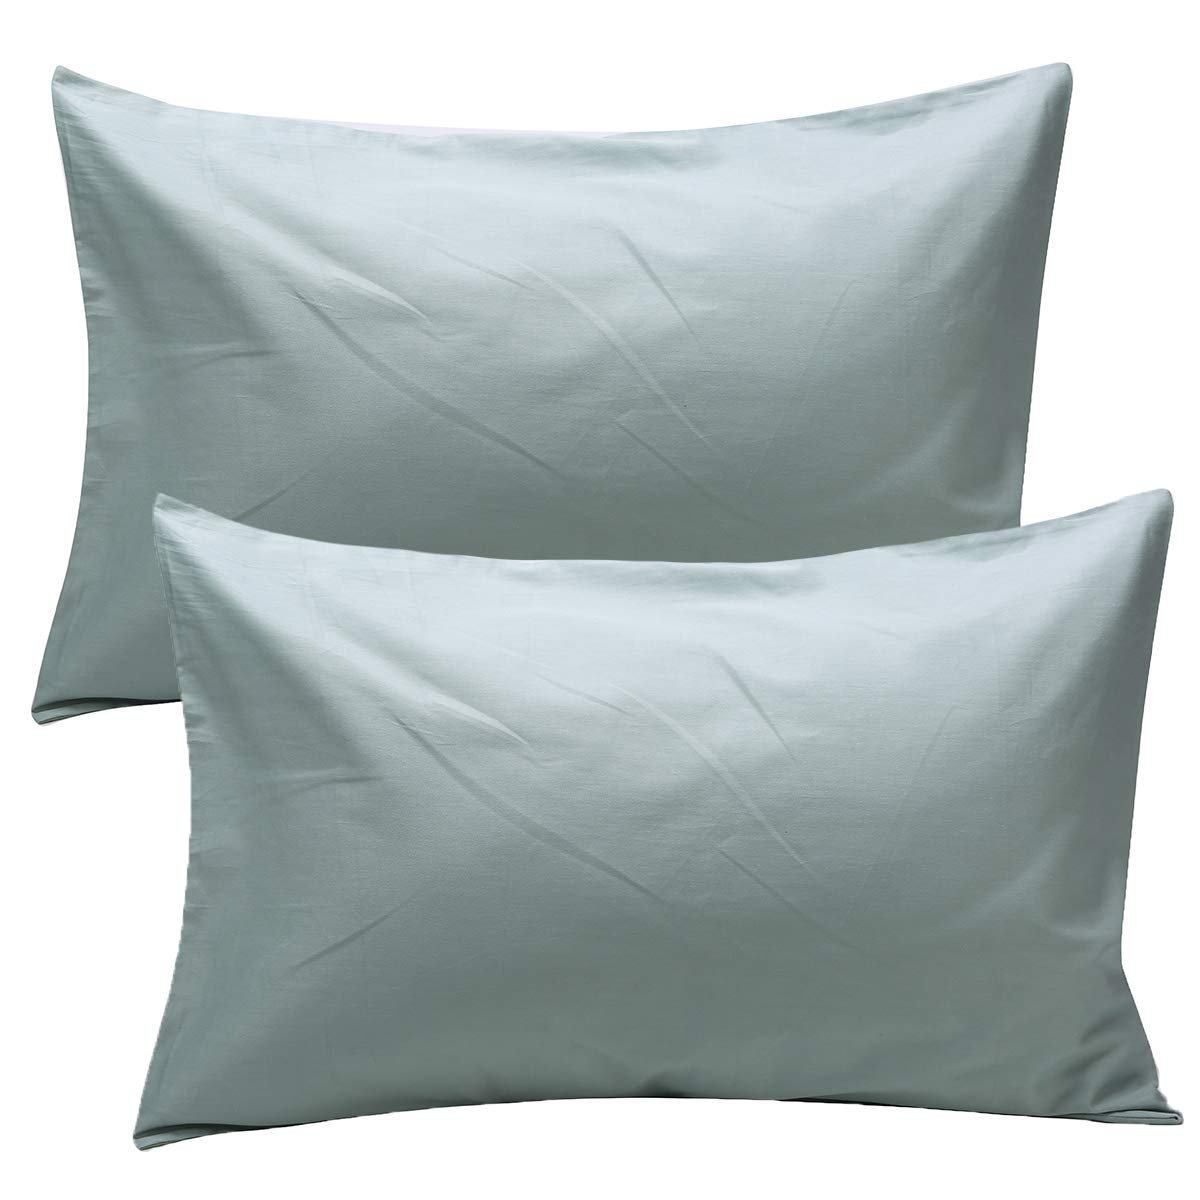 UOMNY Kid Pillowcases 2 Pack 100% Cotton Pillow Cover 14x20 Baby Pillow Cases for Sleeping Tiny Pillows case for Kids Solid Pillowcases Travel Pillowcases Celadon Kids' Pillowcases